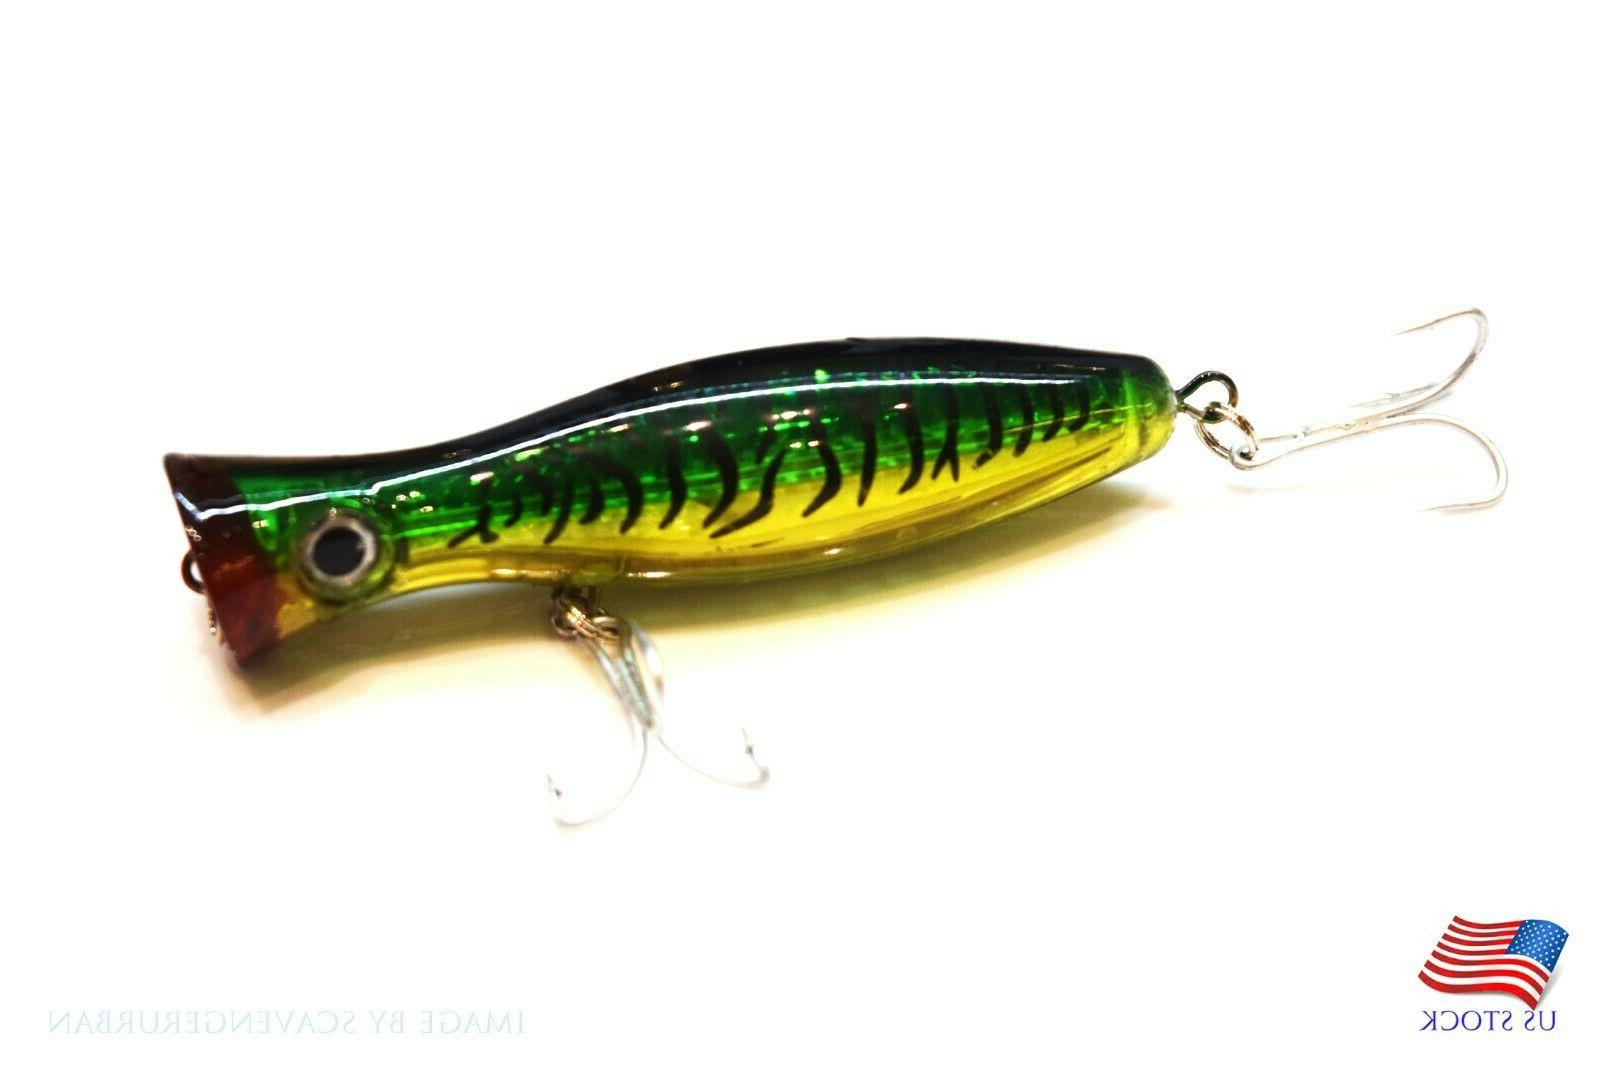 New Topwater Popper Lure Artificial Lure Offshore Fishing Bass,